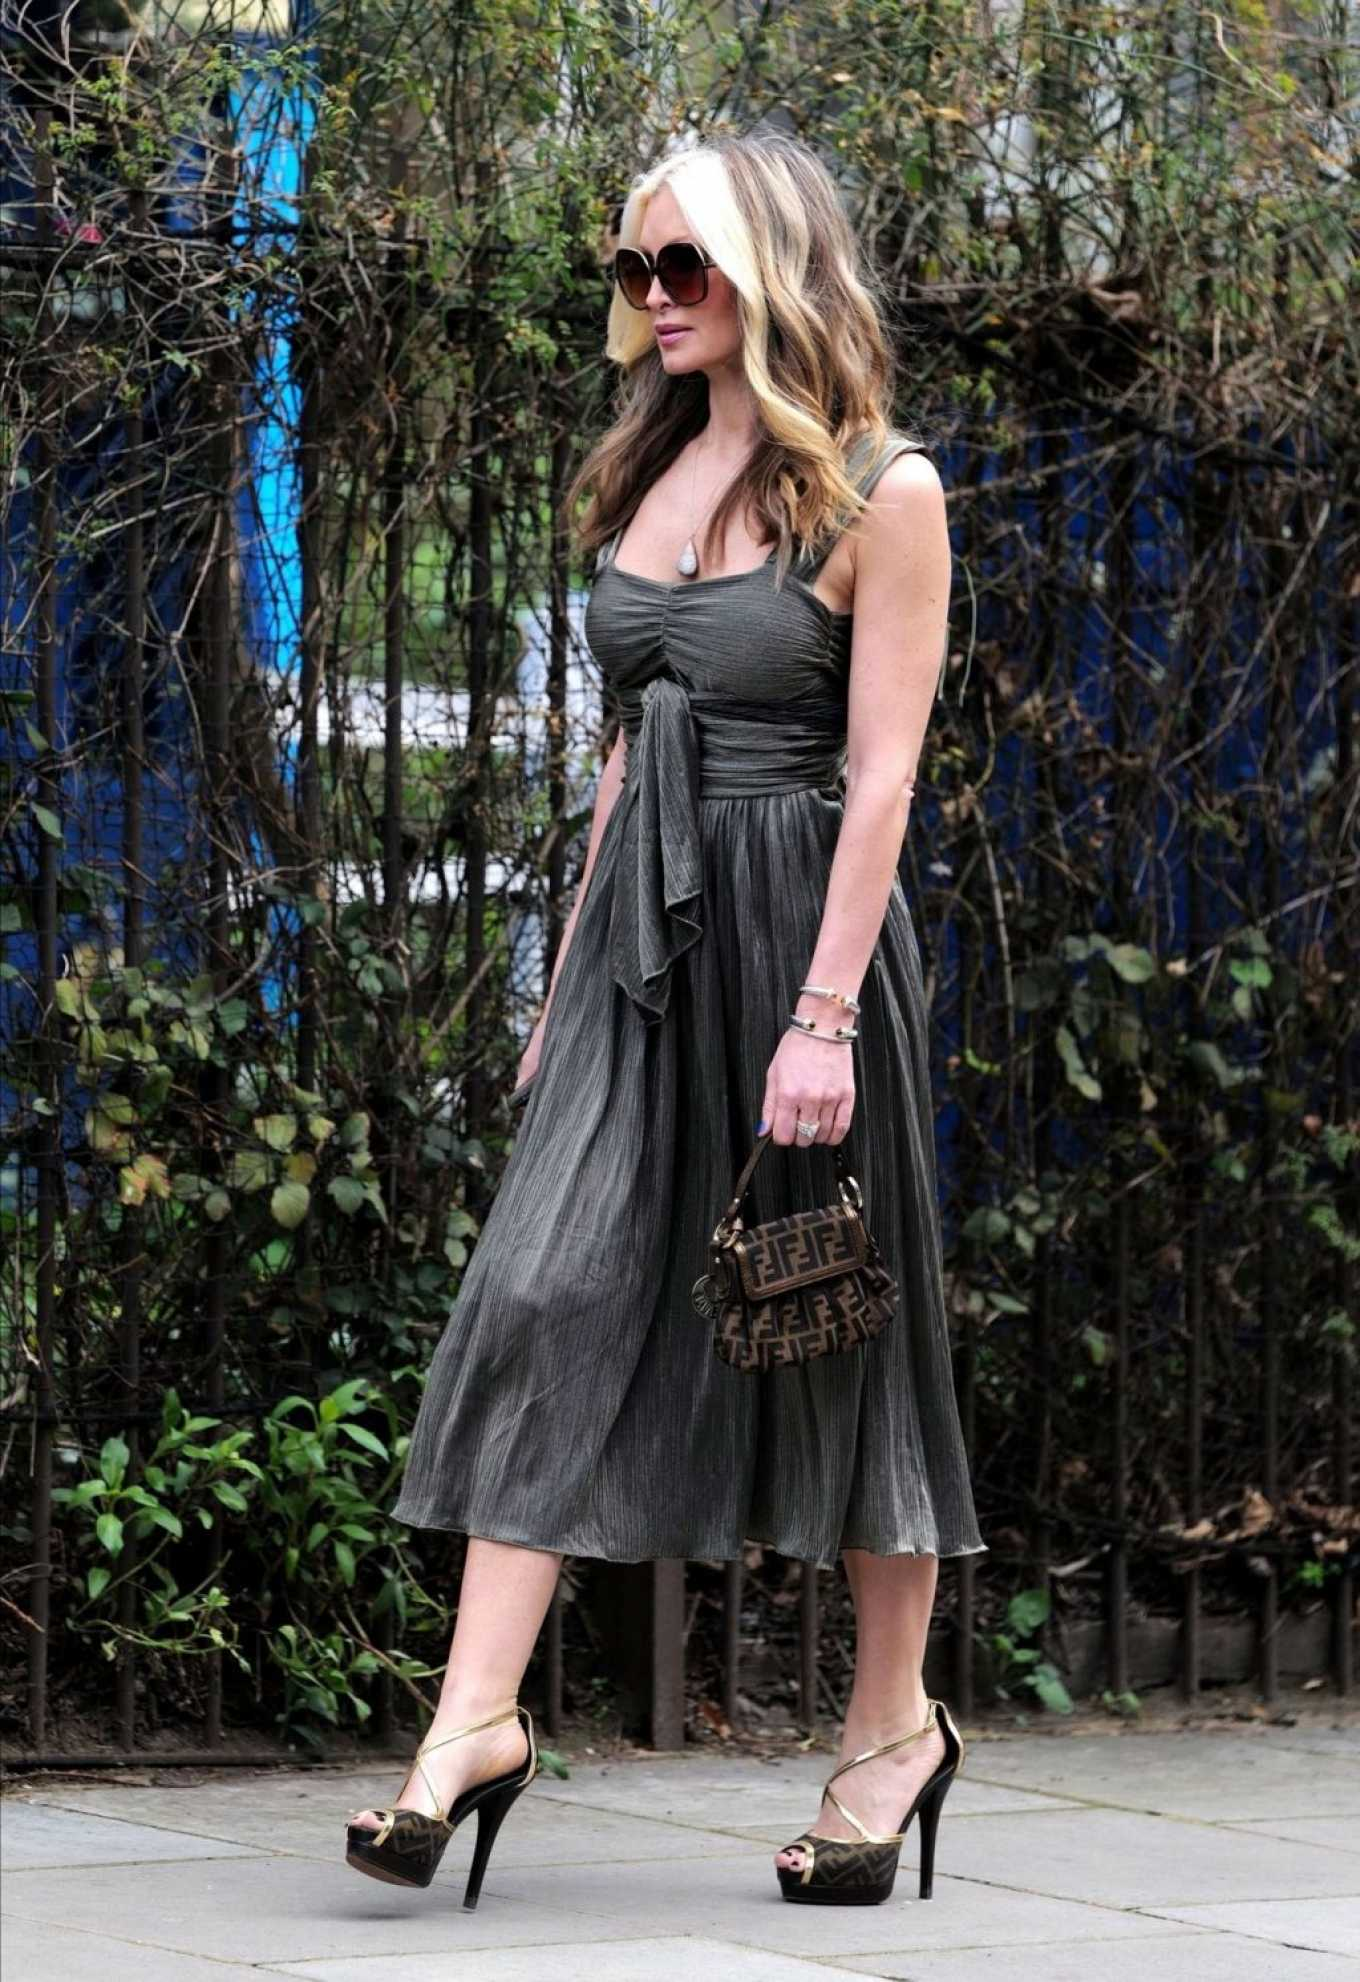 Caprice Bourret 2020 : Caprice Bourret – Out in London-17